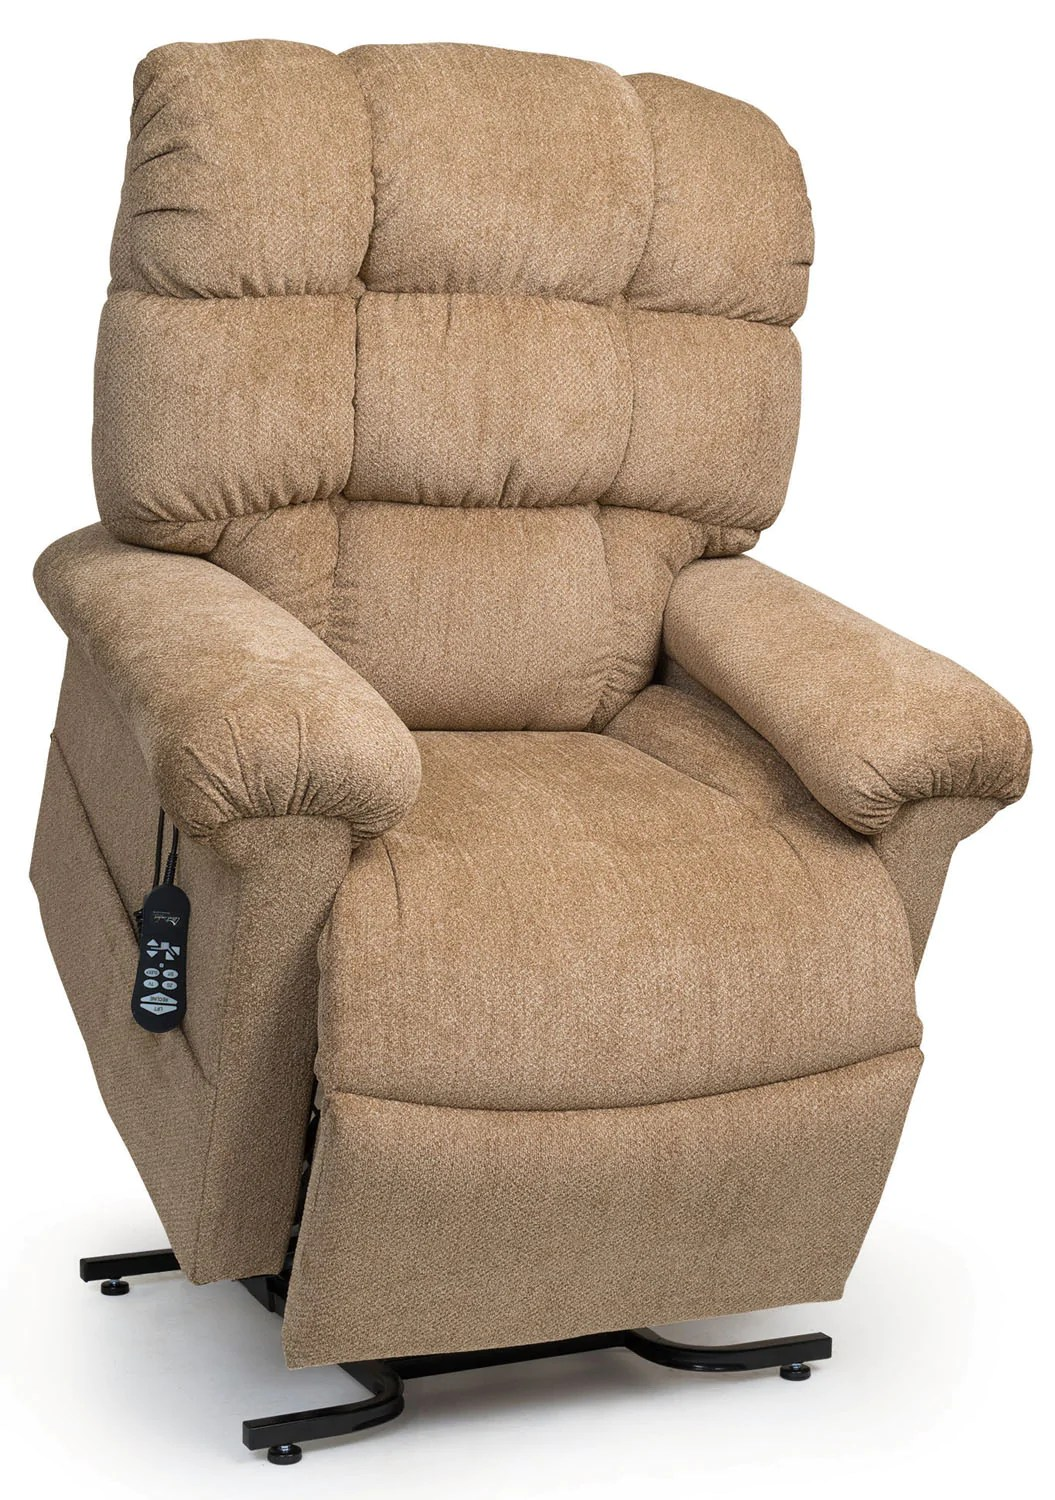 Zero Gravity Lift Chair Automatic Recliner Lift Chair Recliners For Tall People